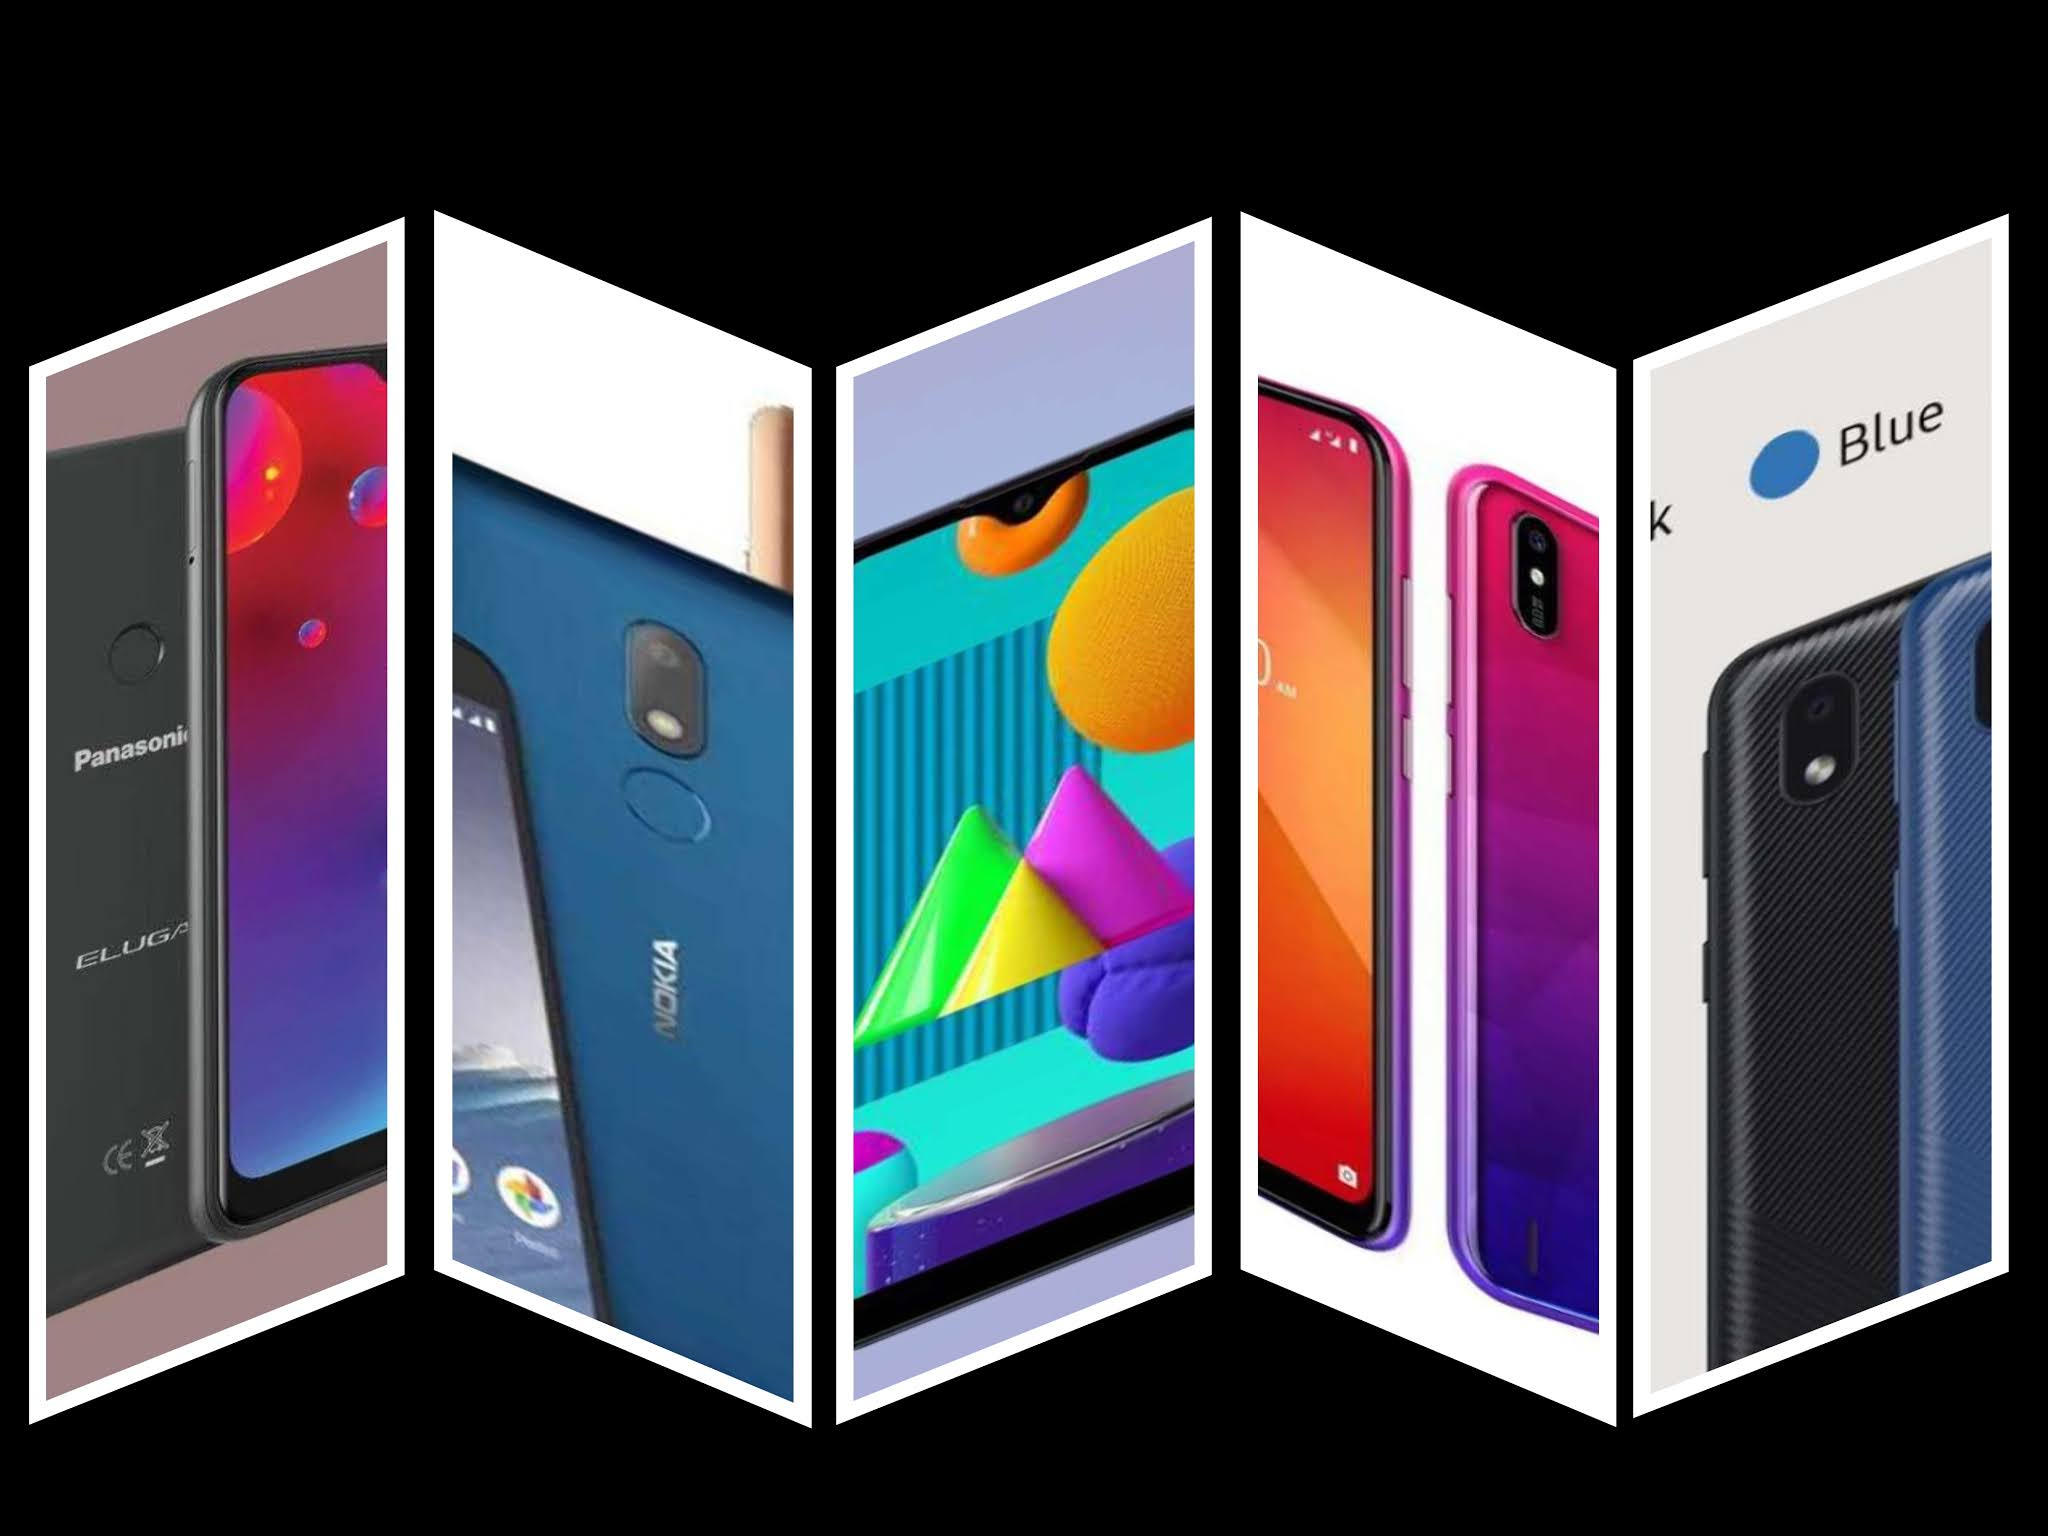 Mobile Phones: 5 non-Chinese smartphones under Rs 10,000 launched in India this year